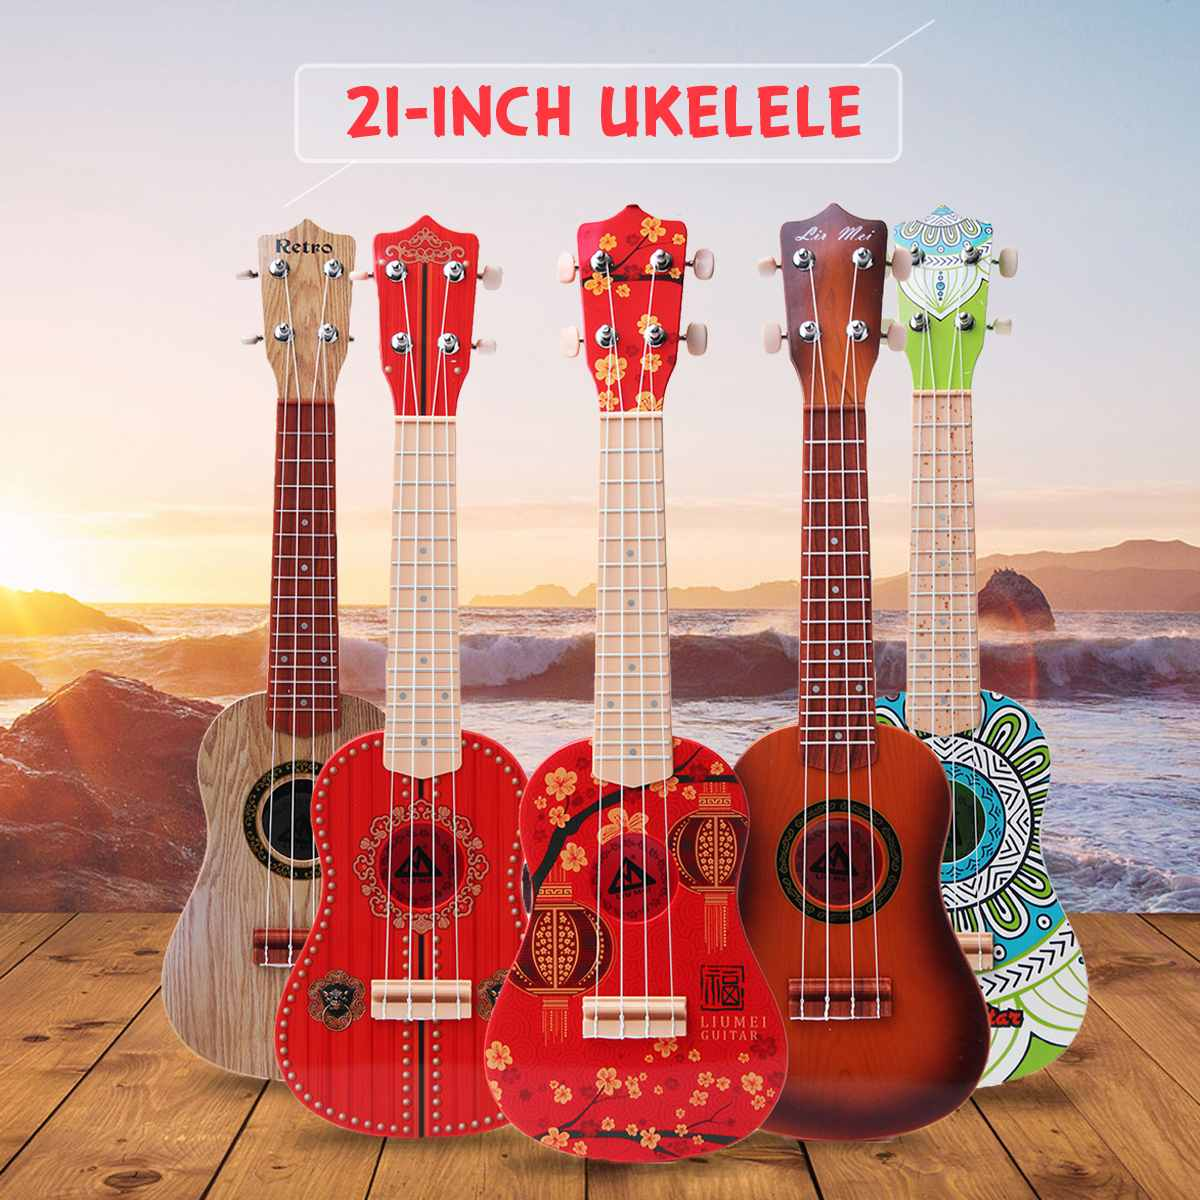 SENRHY 21 Inch 4 String Wood Guitar Ukulele Guitarra Musical Stringed Instrument Toy For Kids Children Play Educational GiftSENRHY 21 Inch 4 String Wood Guitar Ukulele Guitarra Musical Stringed Instrument Toy For Kids Children Play Educational Gift